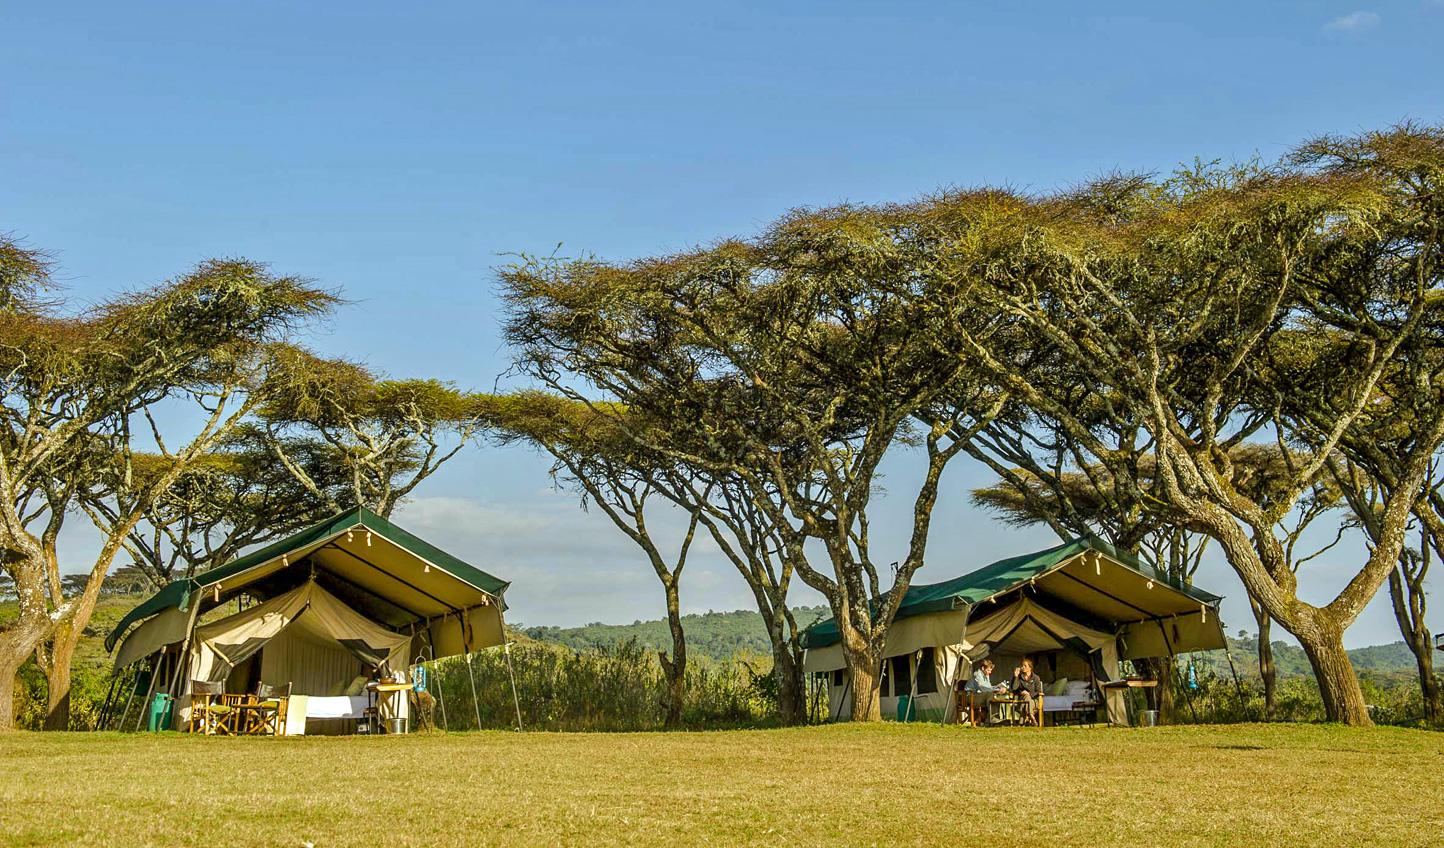 Stay close to the action at Sanctuary Ngorongoro Crater Camp